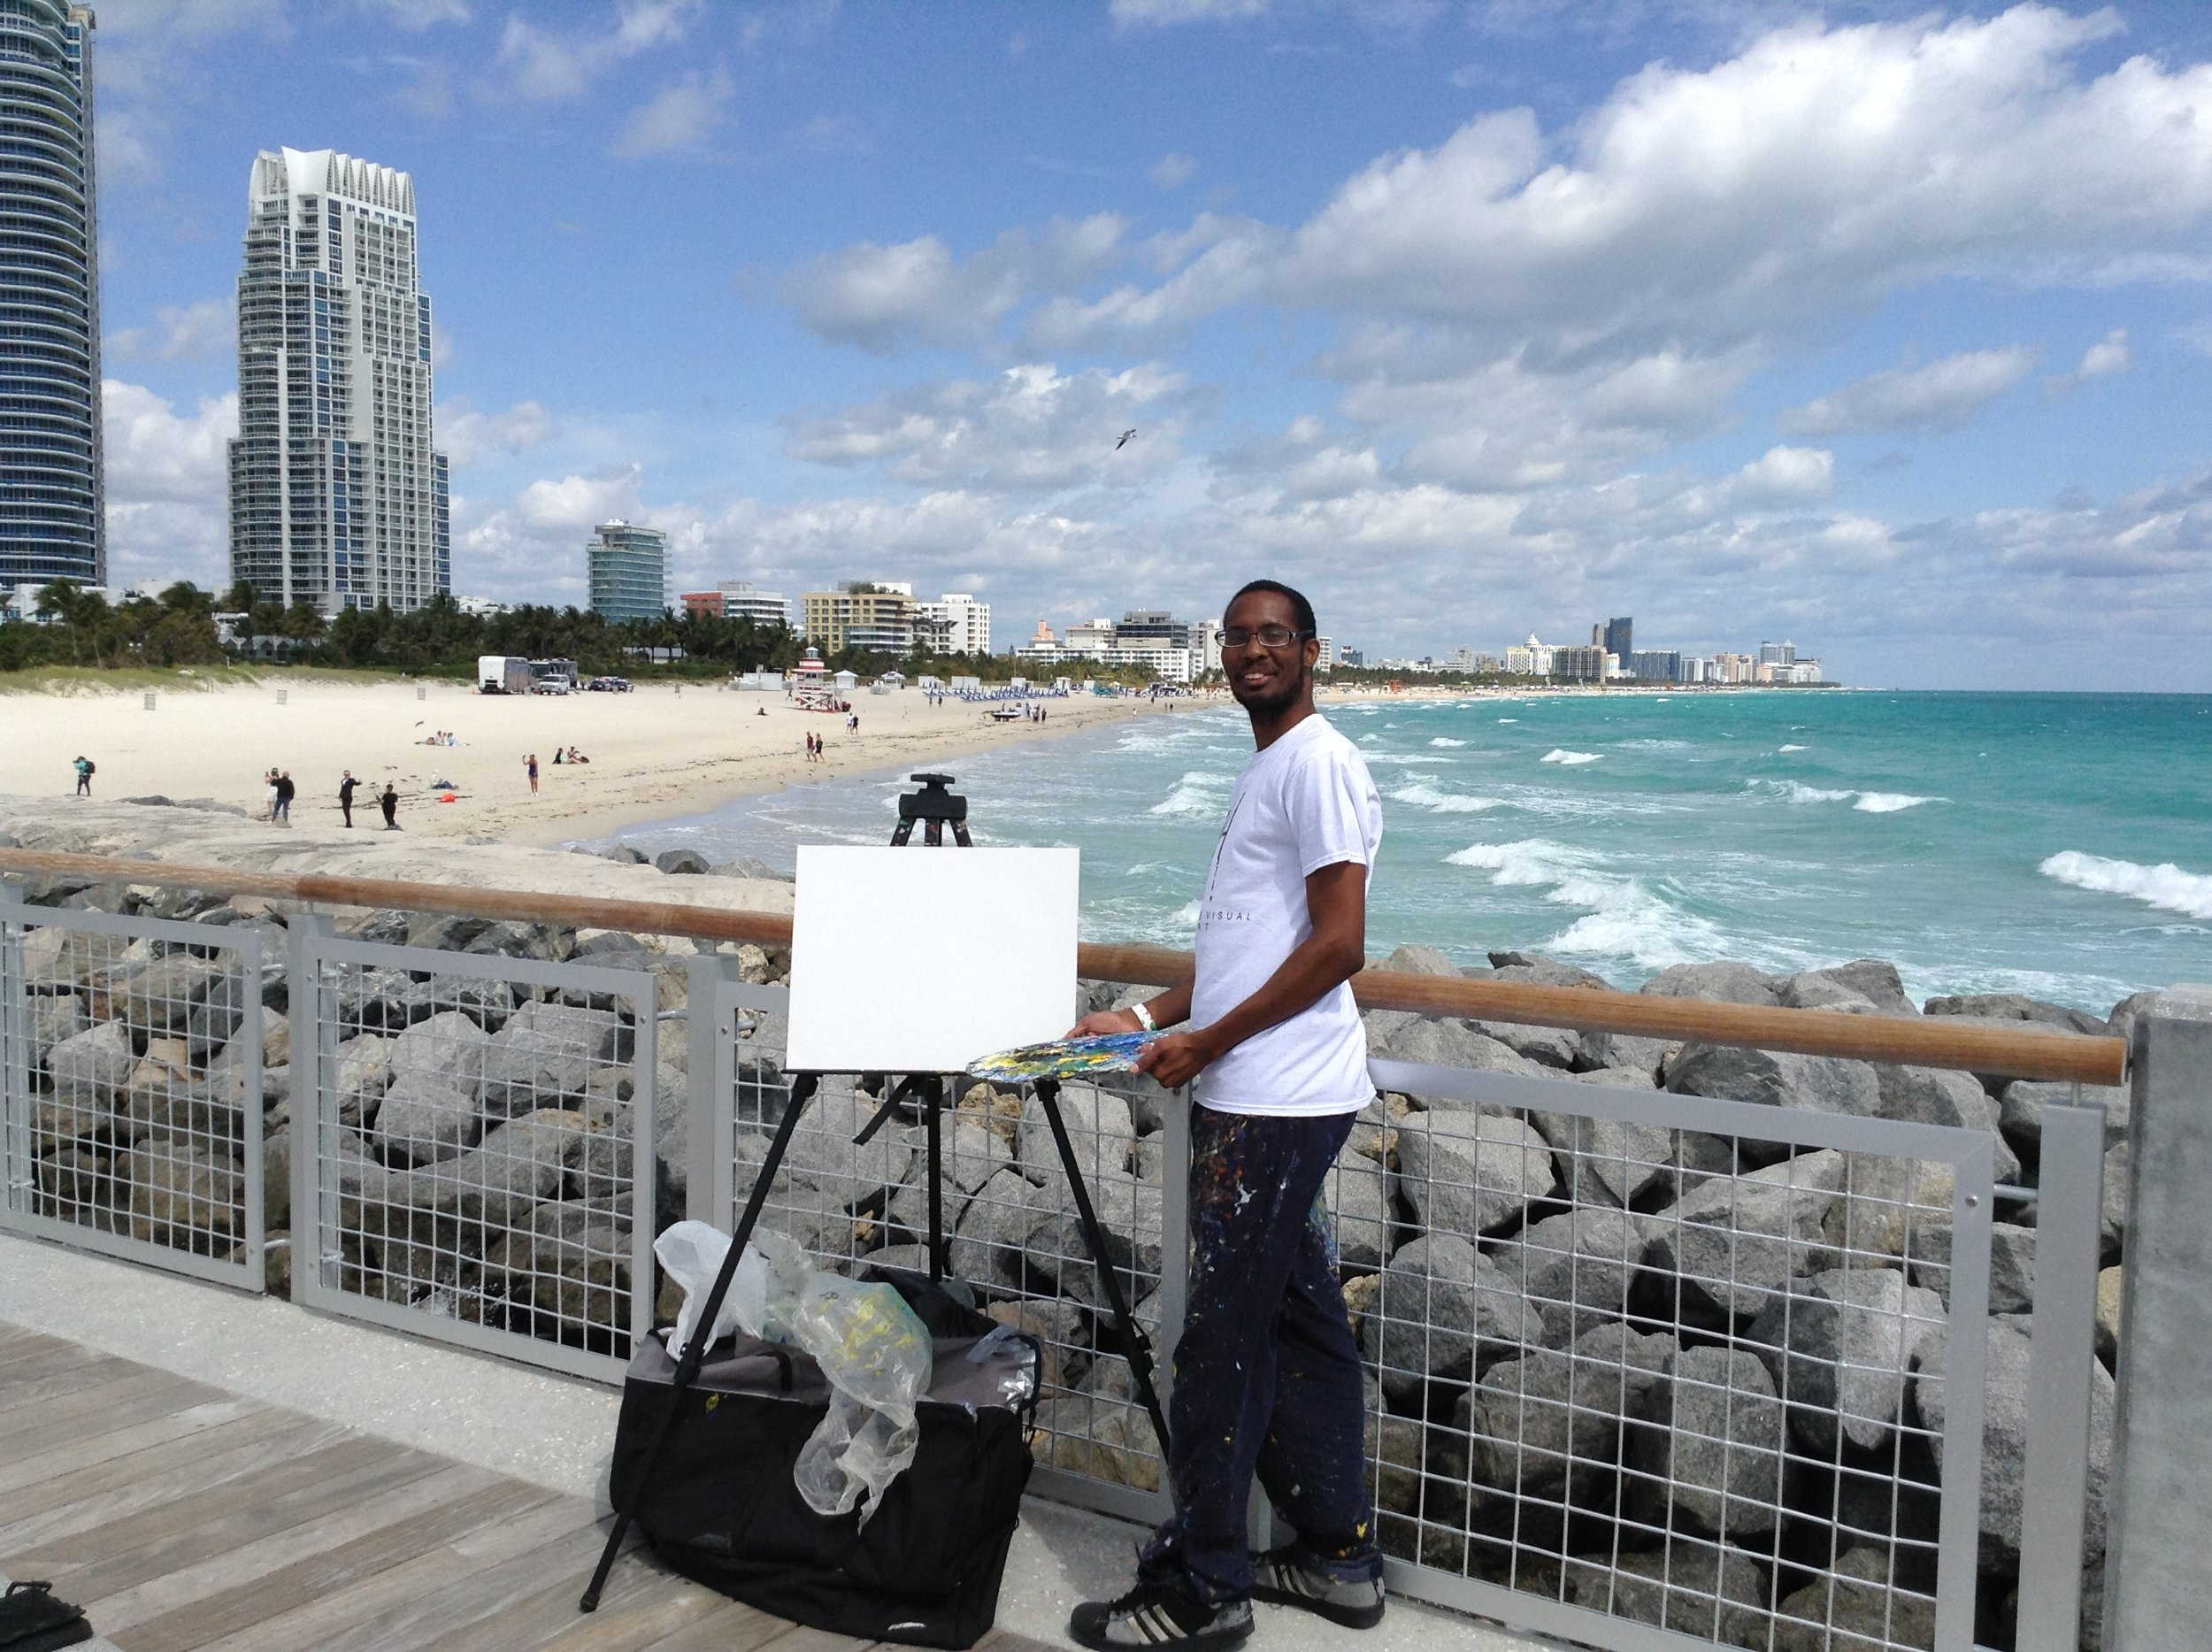 Me on the South Pointe Park Pier doing a live painting of the Miami Beach skyline this past weekend.